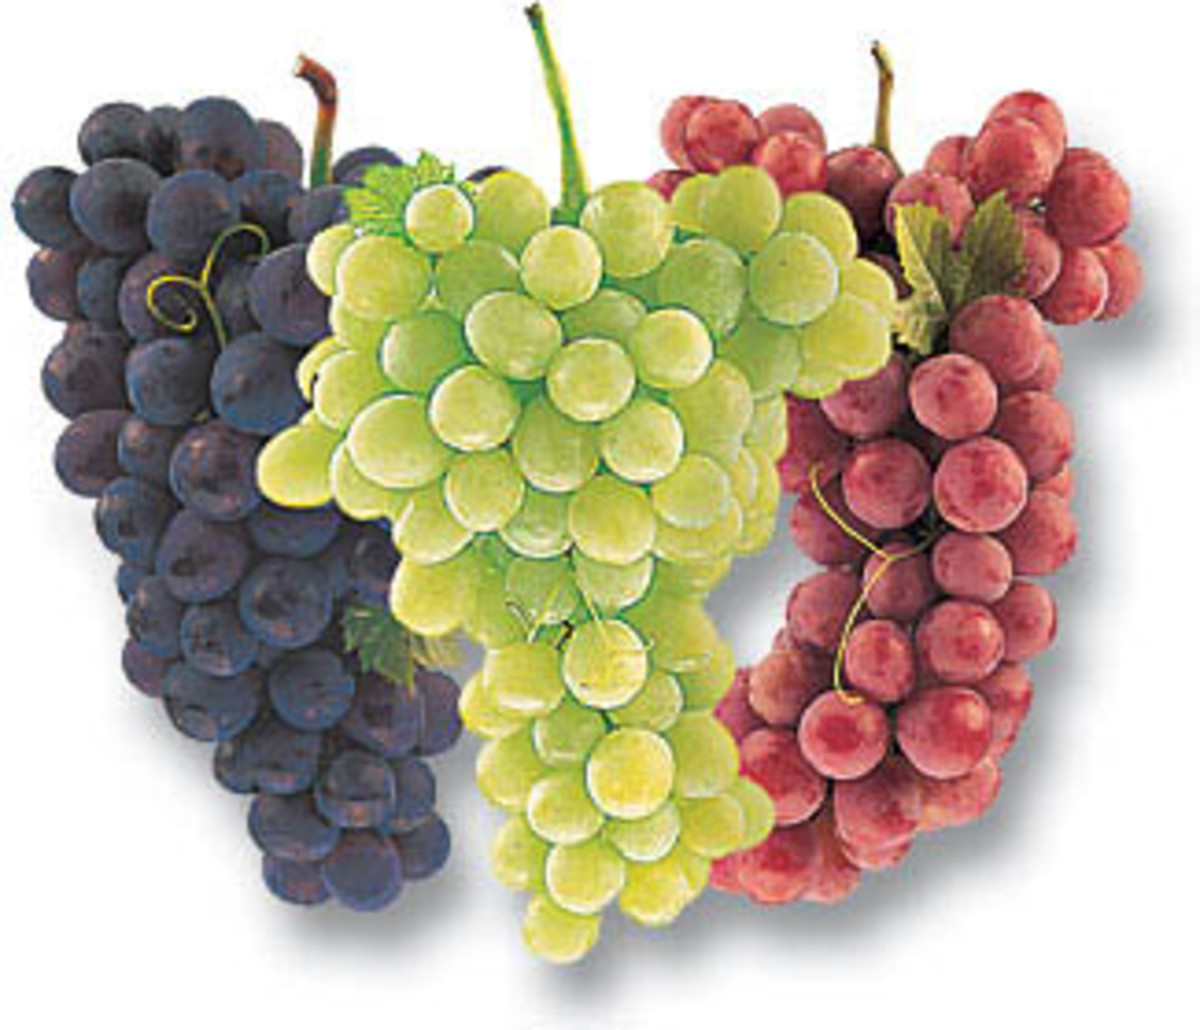 The Awesome Health Benefits of Grapes